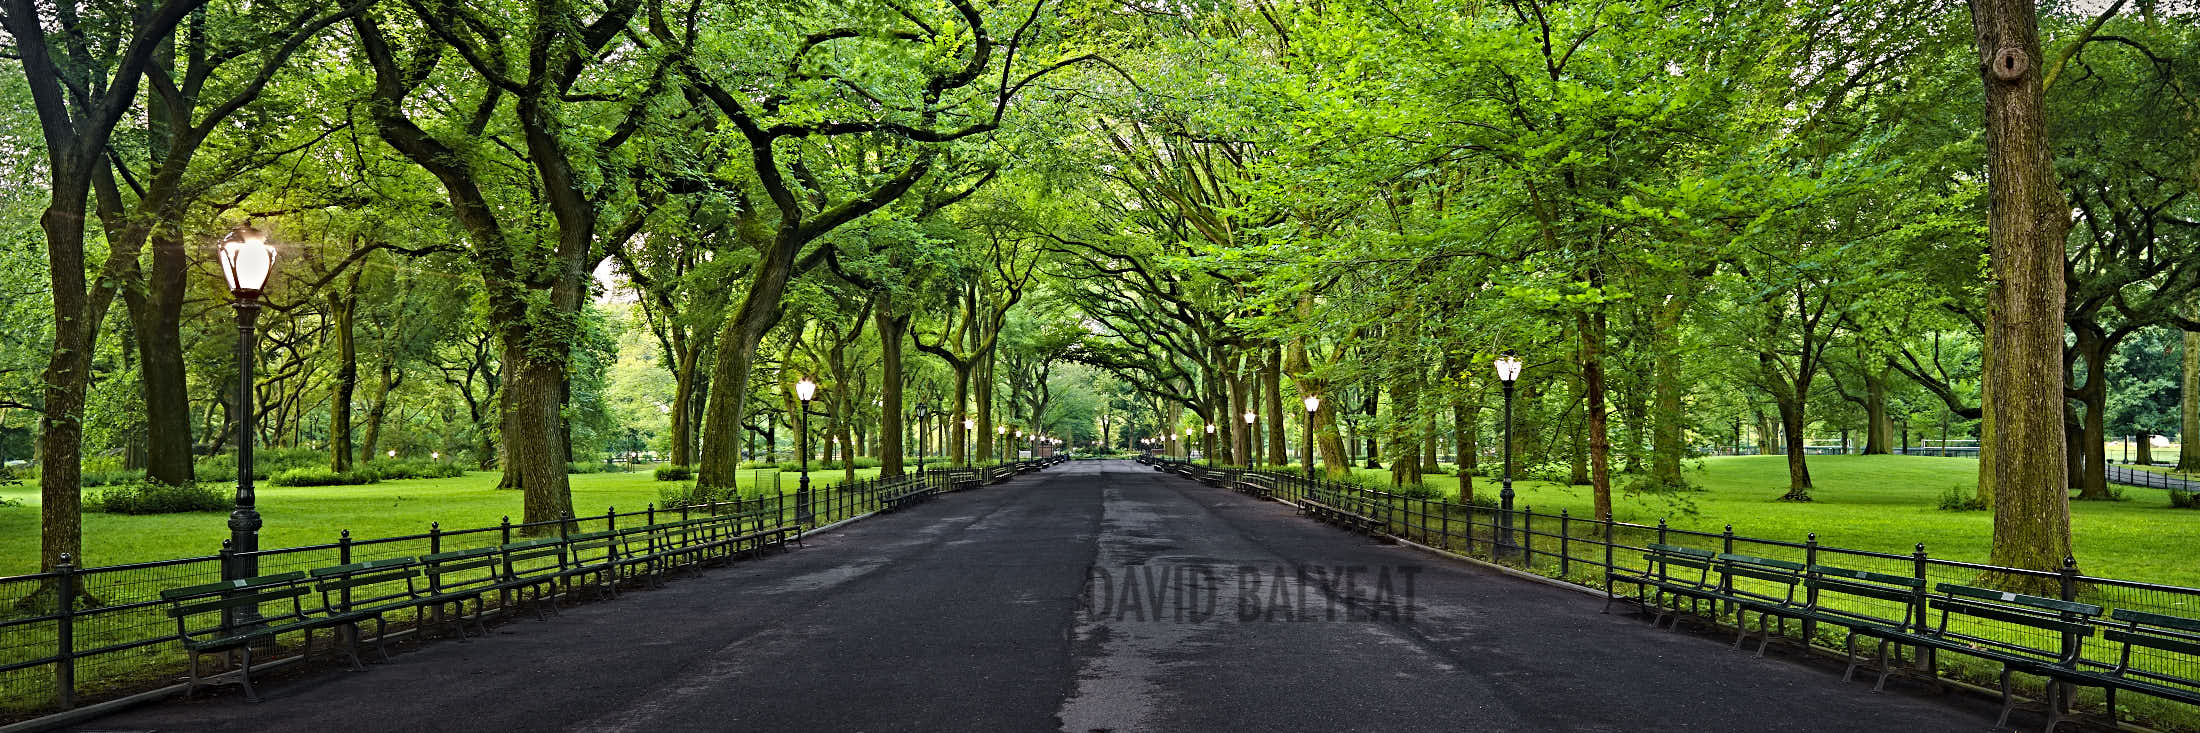 Poets Of The Fall Wallpaper City Escape Central Park Summer David Balyeat